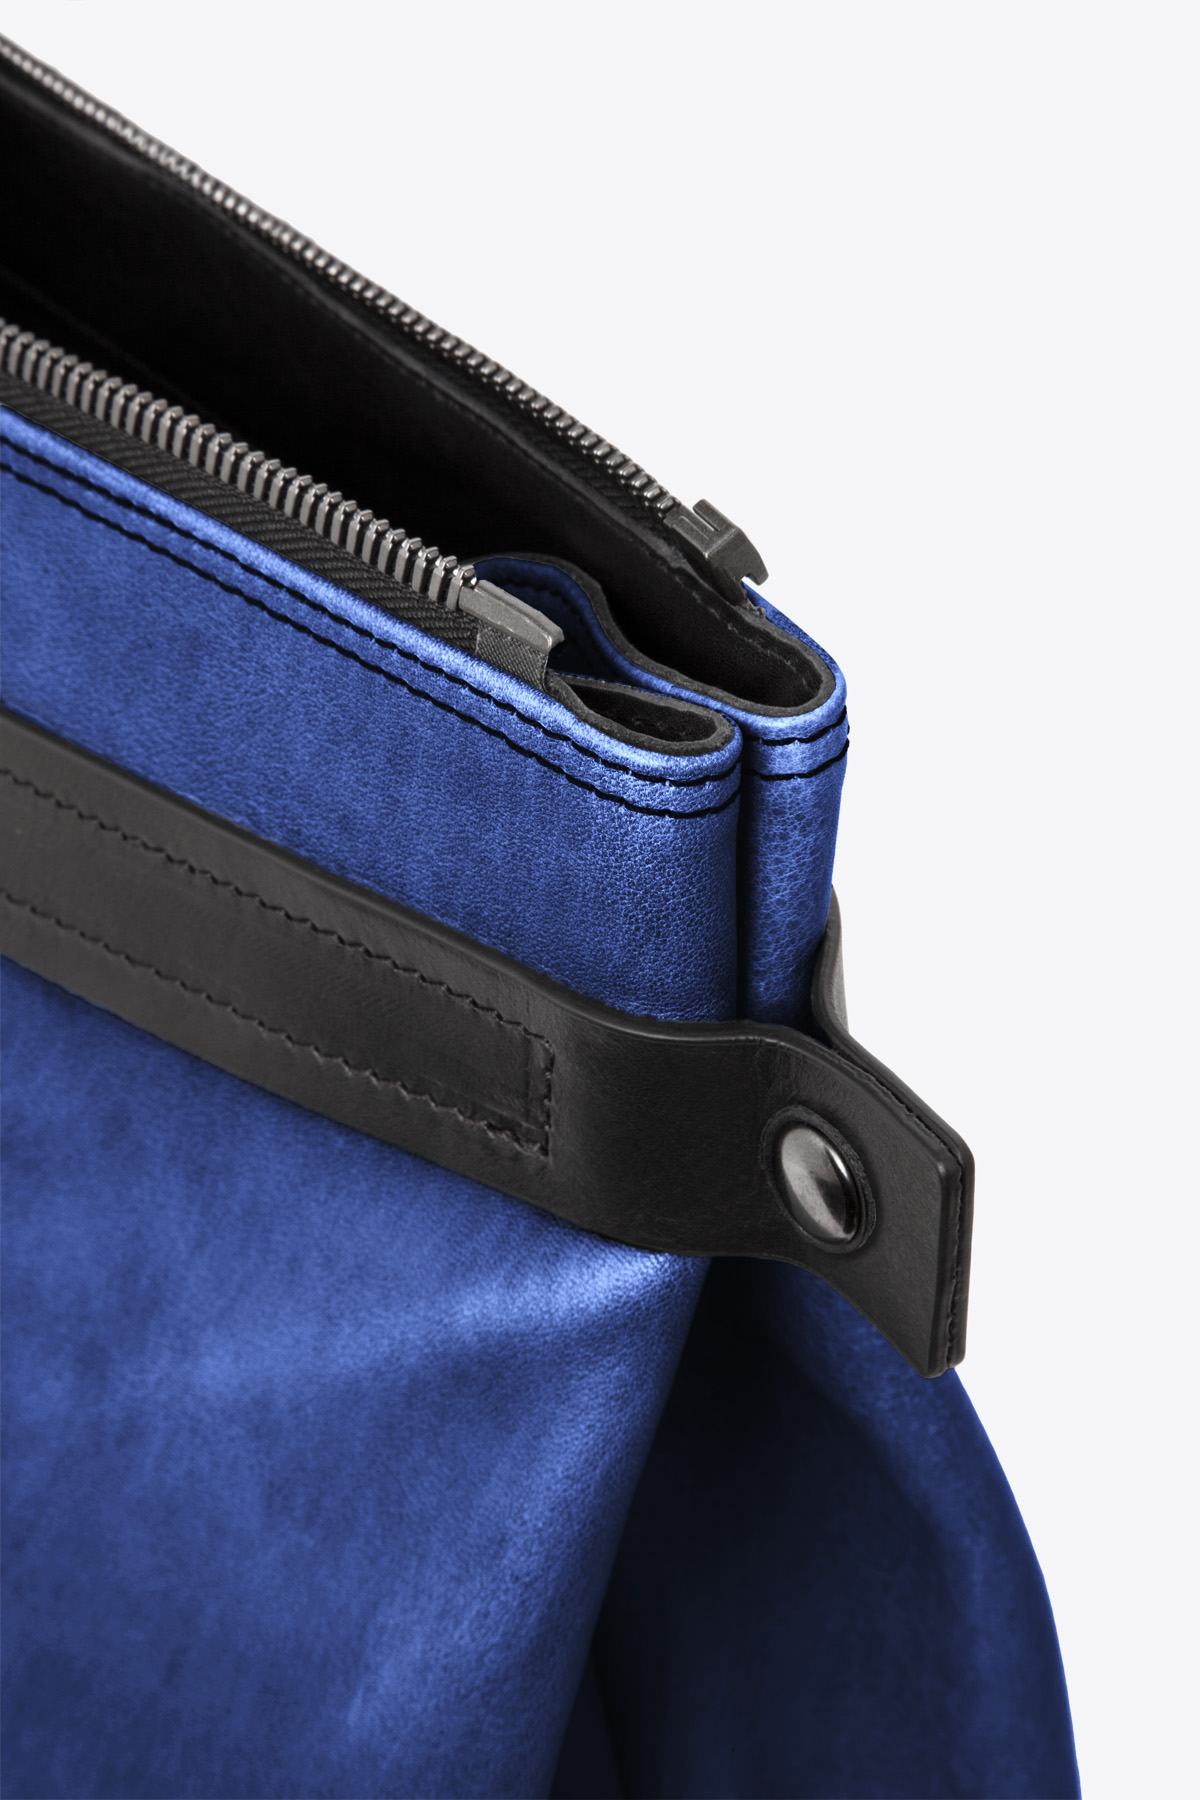 dclr007s-tote-a20-royalblue-detail